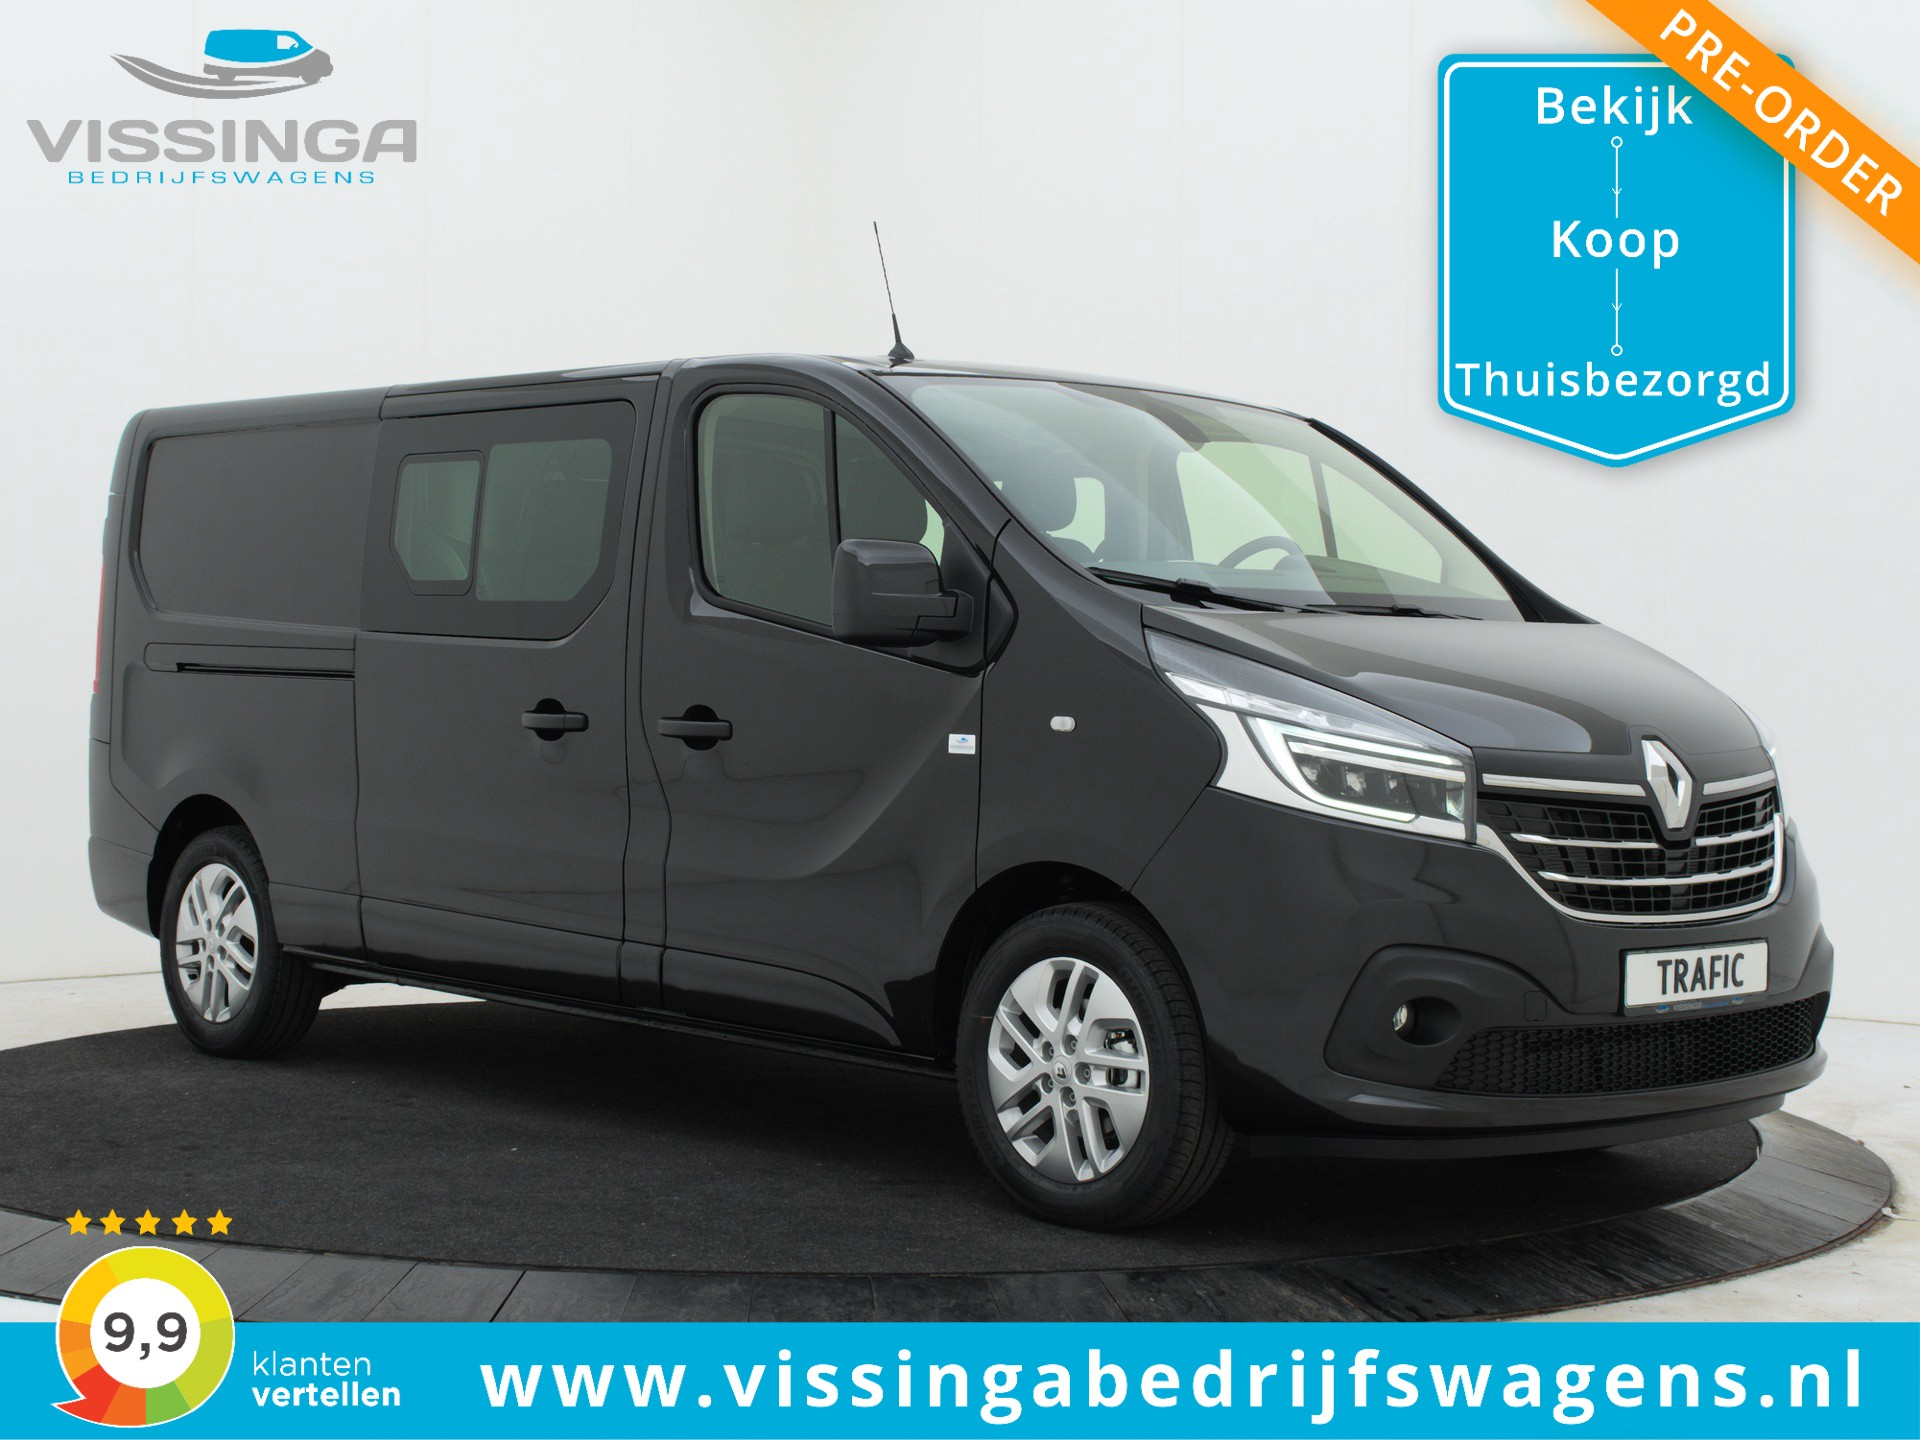 Renault Trafic T29 2.0 dCi 170 pk L2H1 Dubbele Cabine